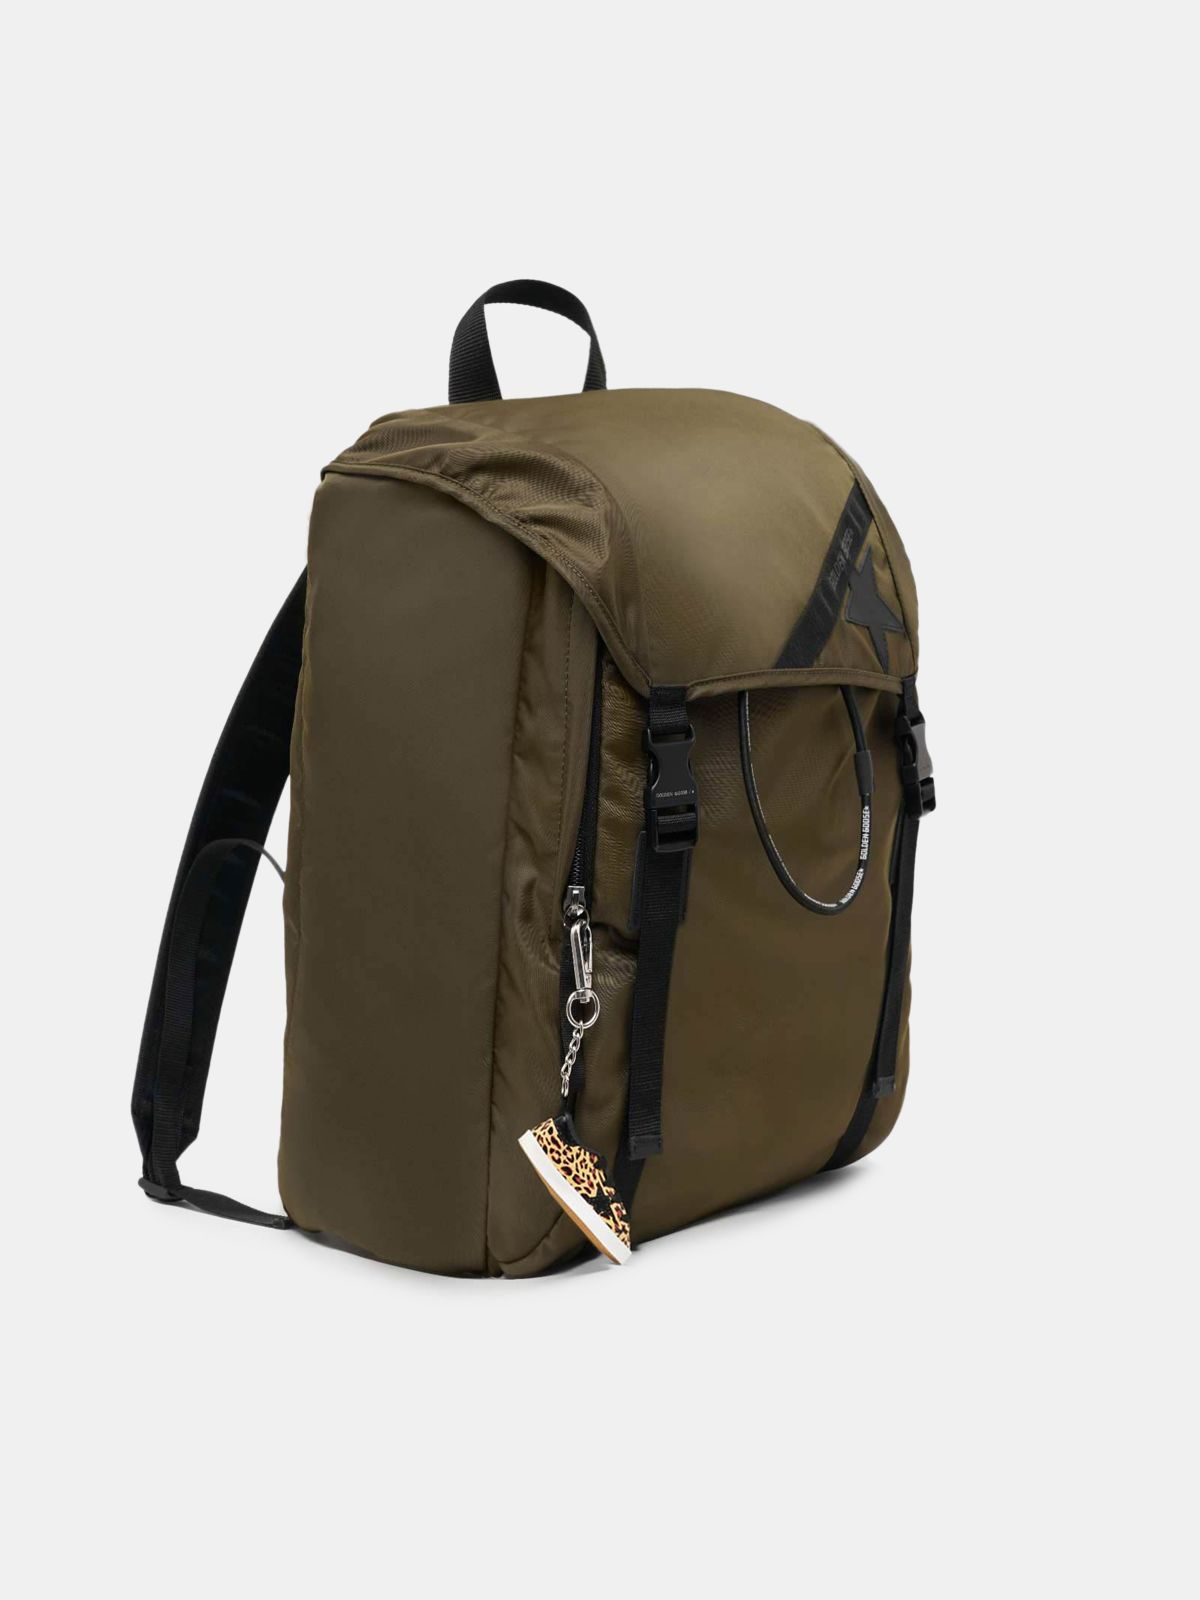 Golden Goose - Olive-green nylon Journey backpack in